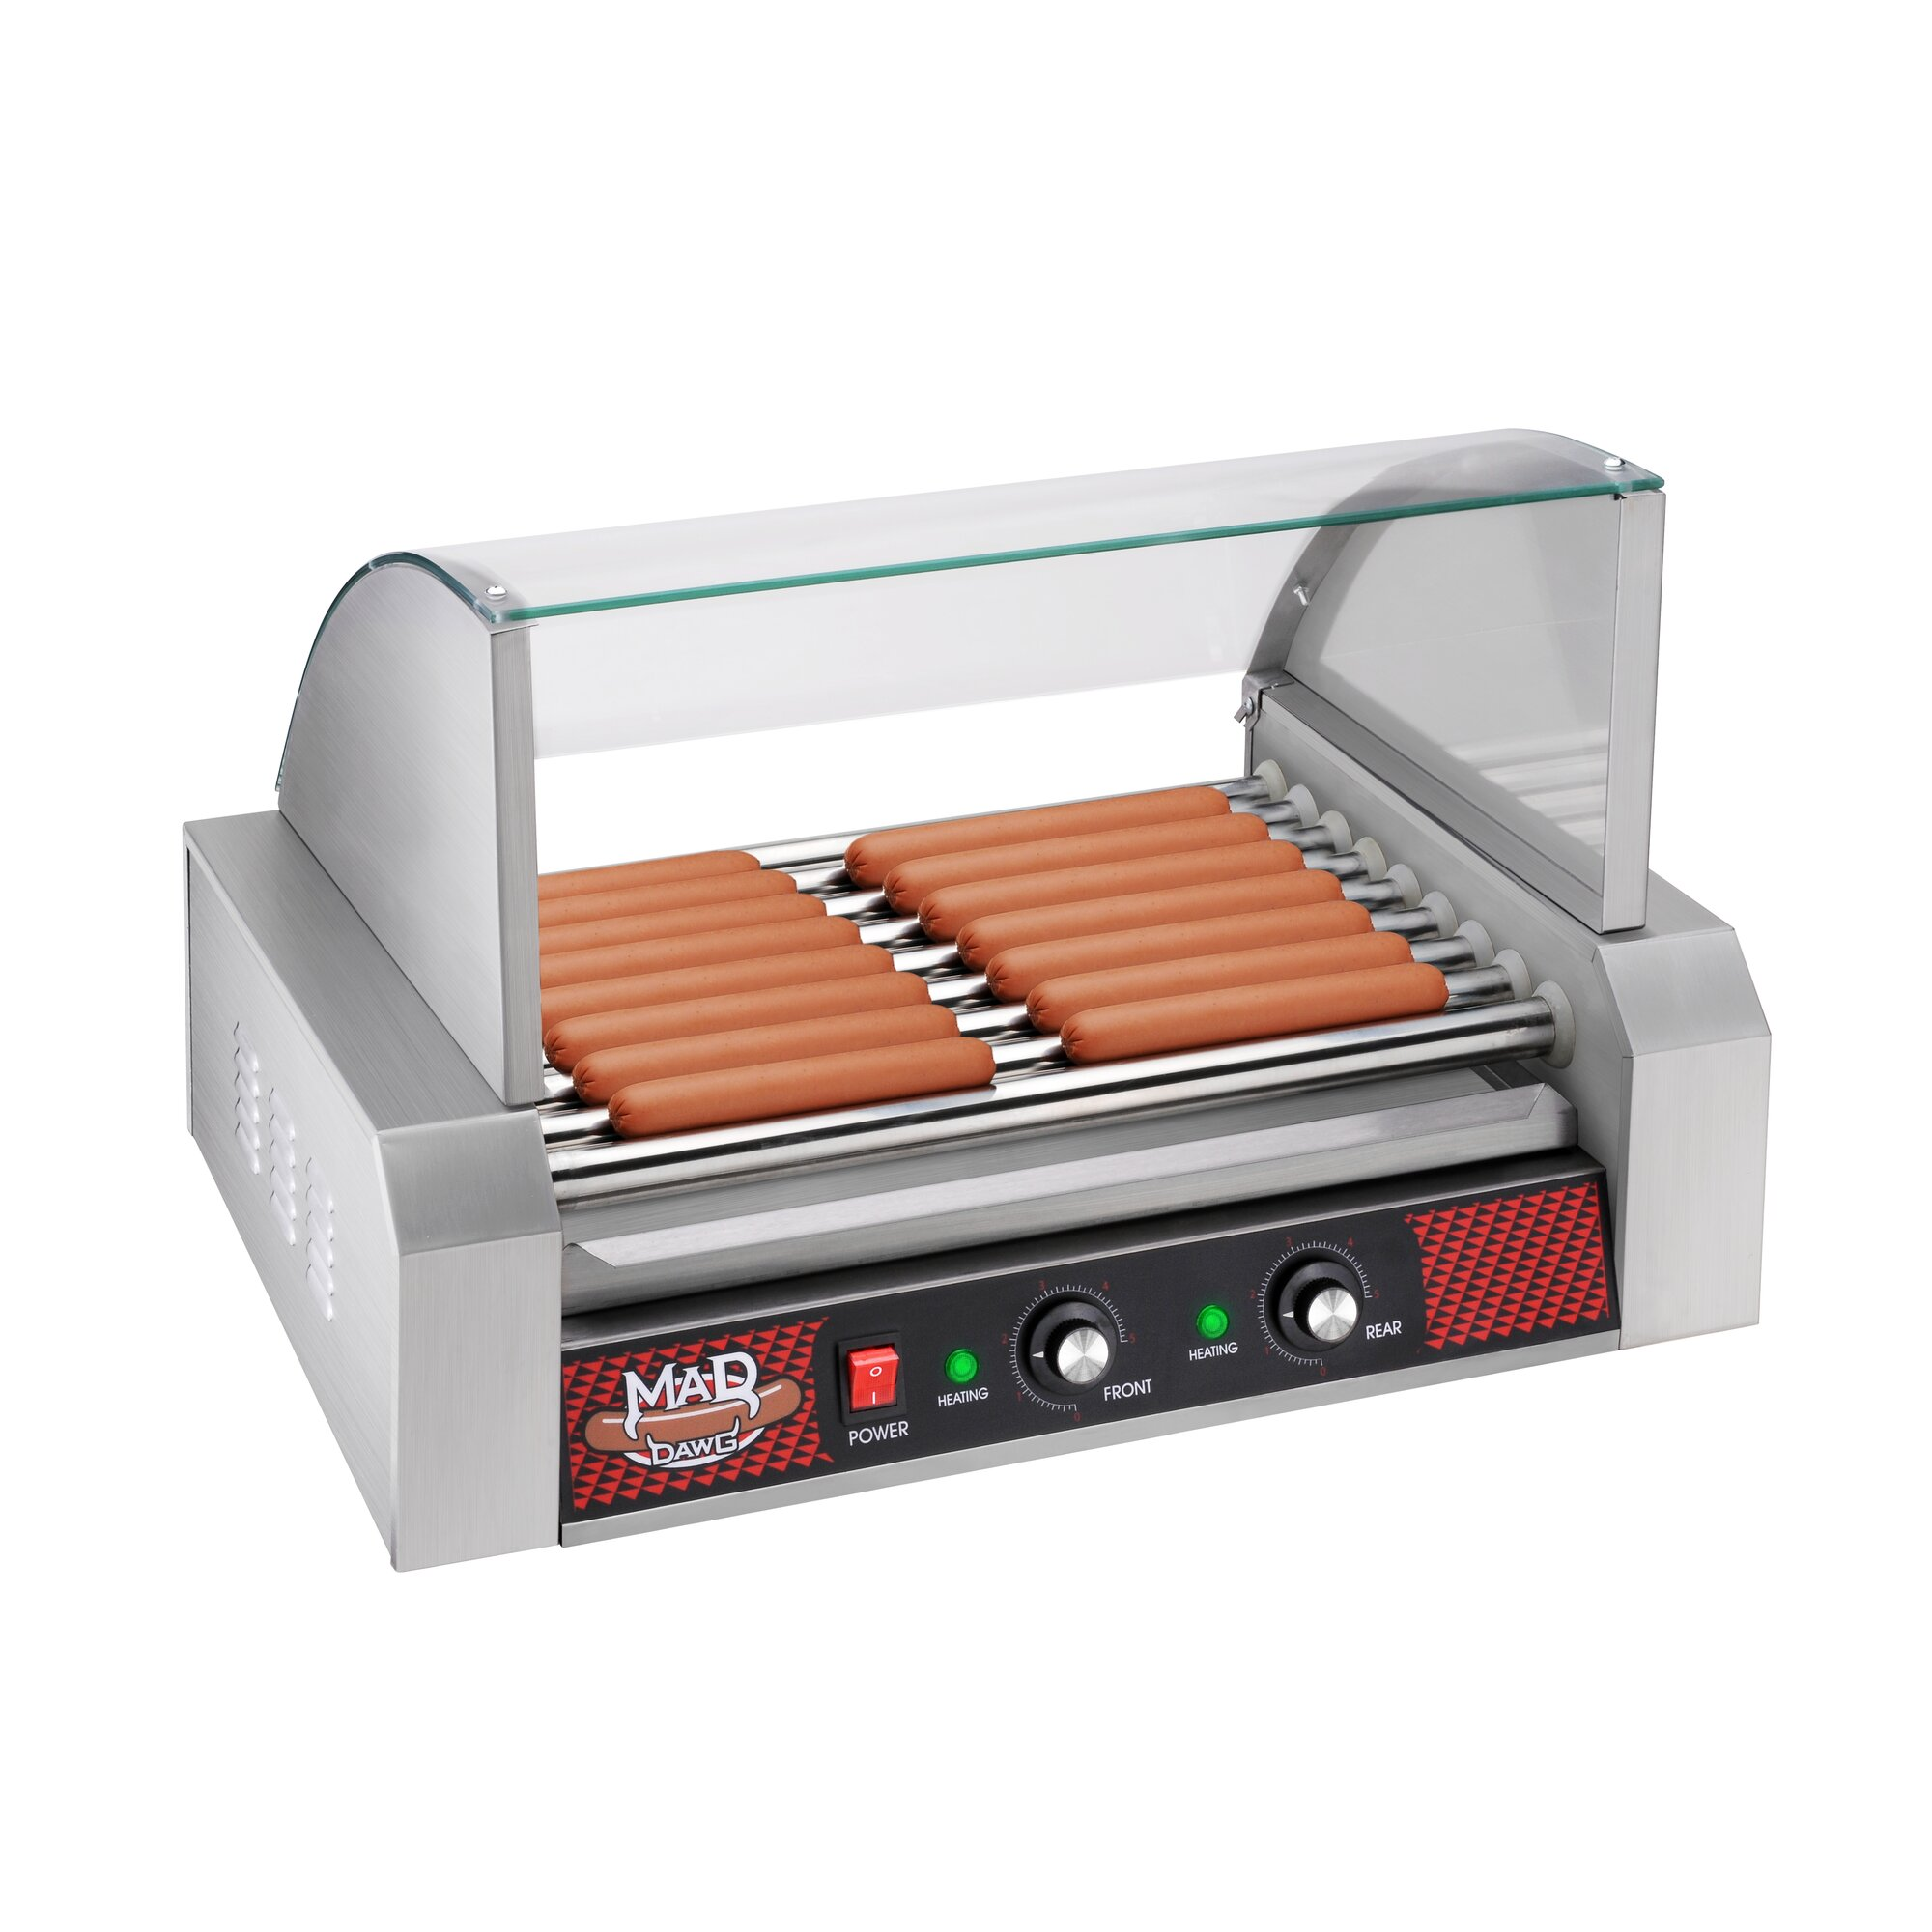 Uncategorized Hot Dog Cookers Specialty Kitchen Liances Great Northern Popcorn Mad Dawg Commercial 9 Roller